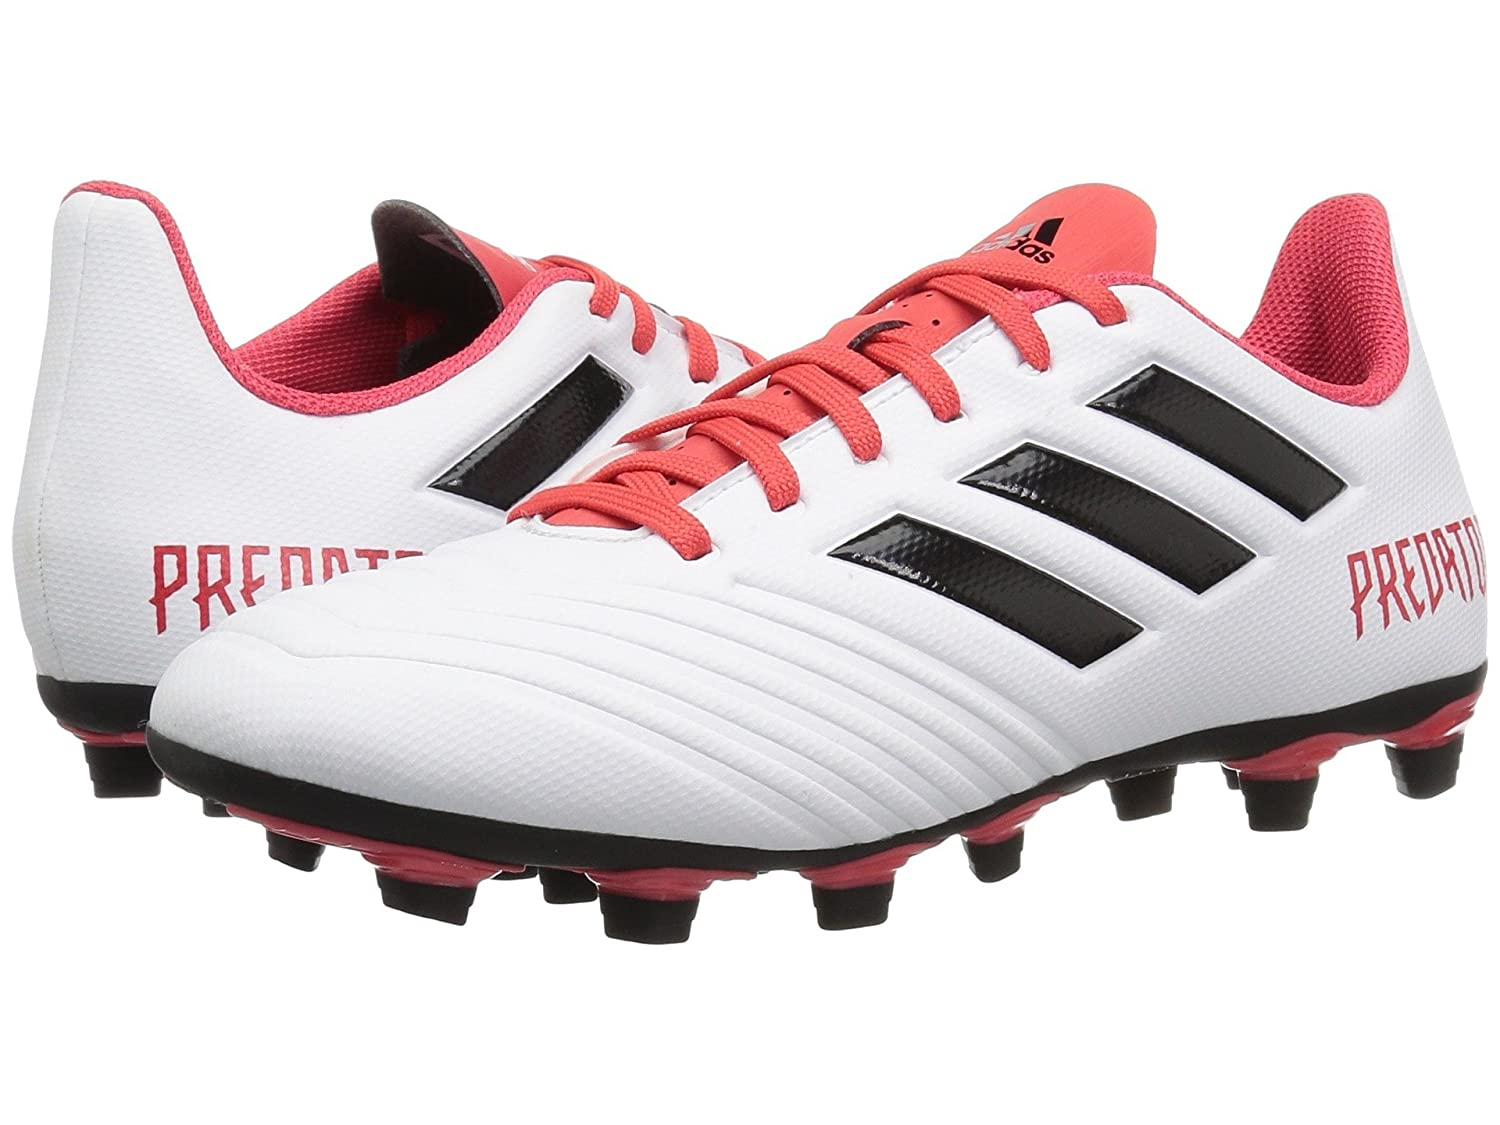 (アディダス) adidas メンズサッカーシューズ靴 Predator 18.4 FG White/Black/Real Coral 10.5 (28.5cm) D Medium B07BQHQWZD